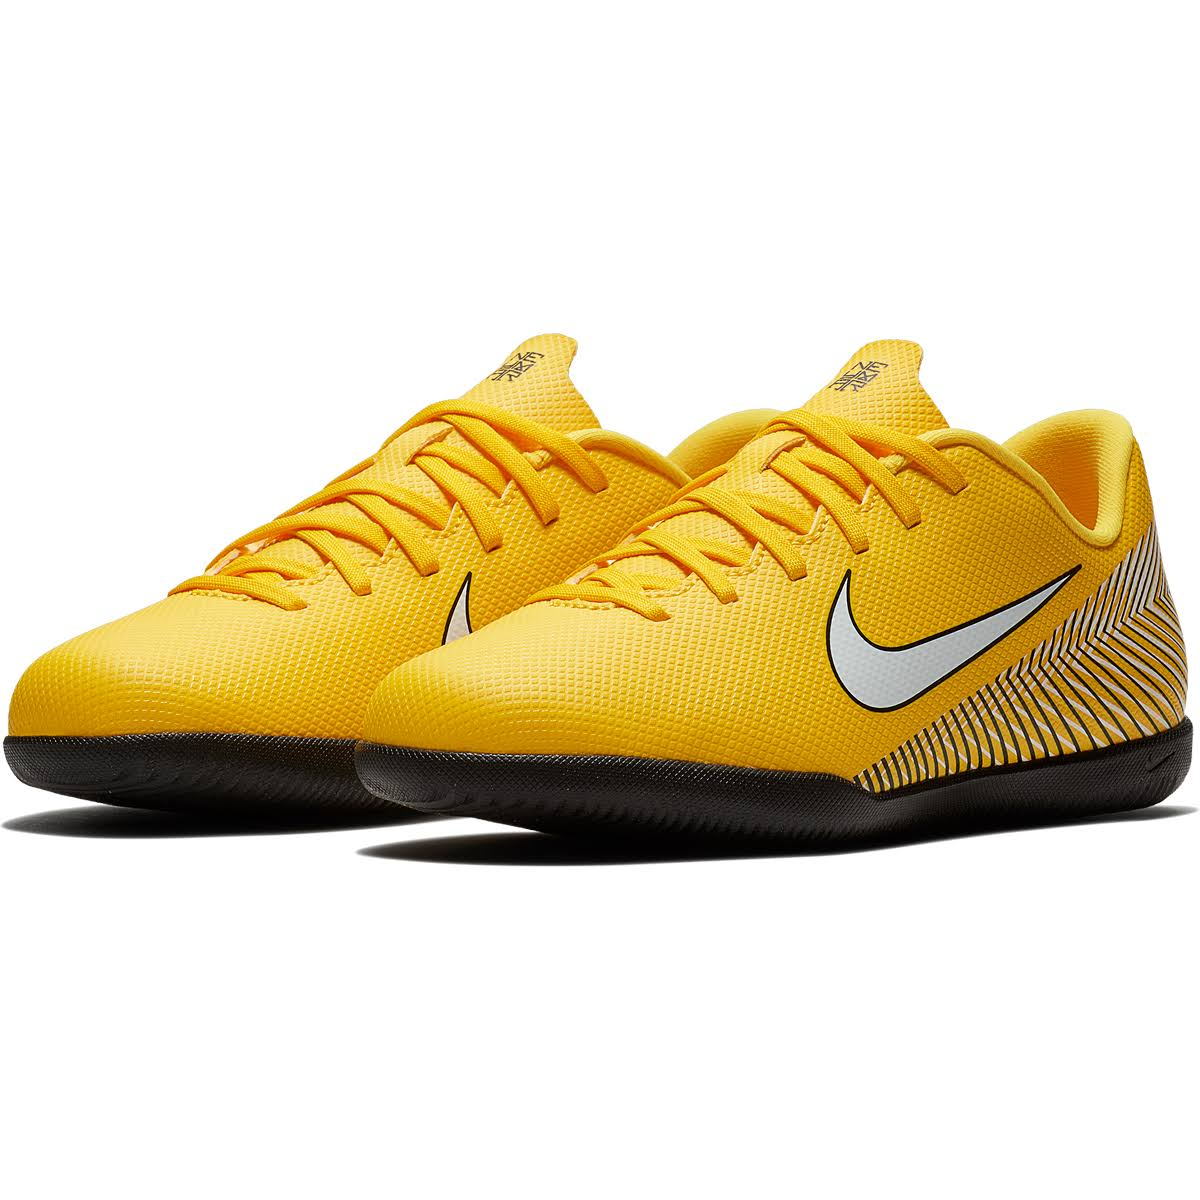 12 Njr Junior Nike Vapor Neymar Ic Neymar Club 6 qwBBEI5